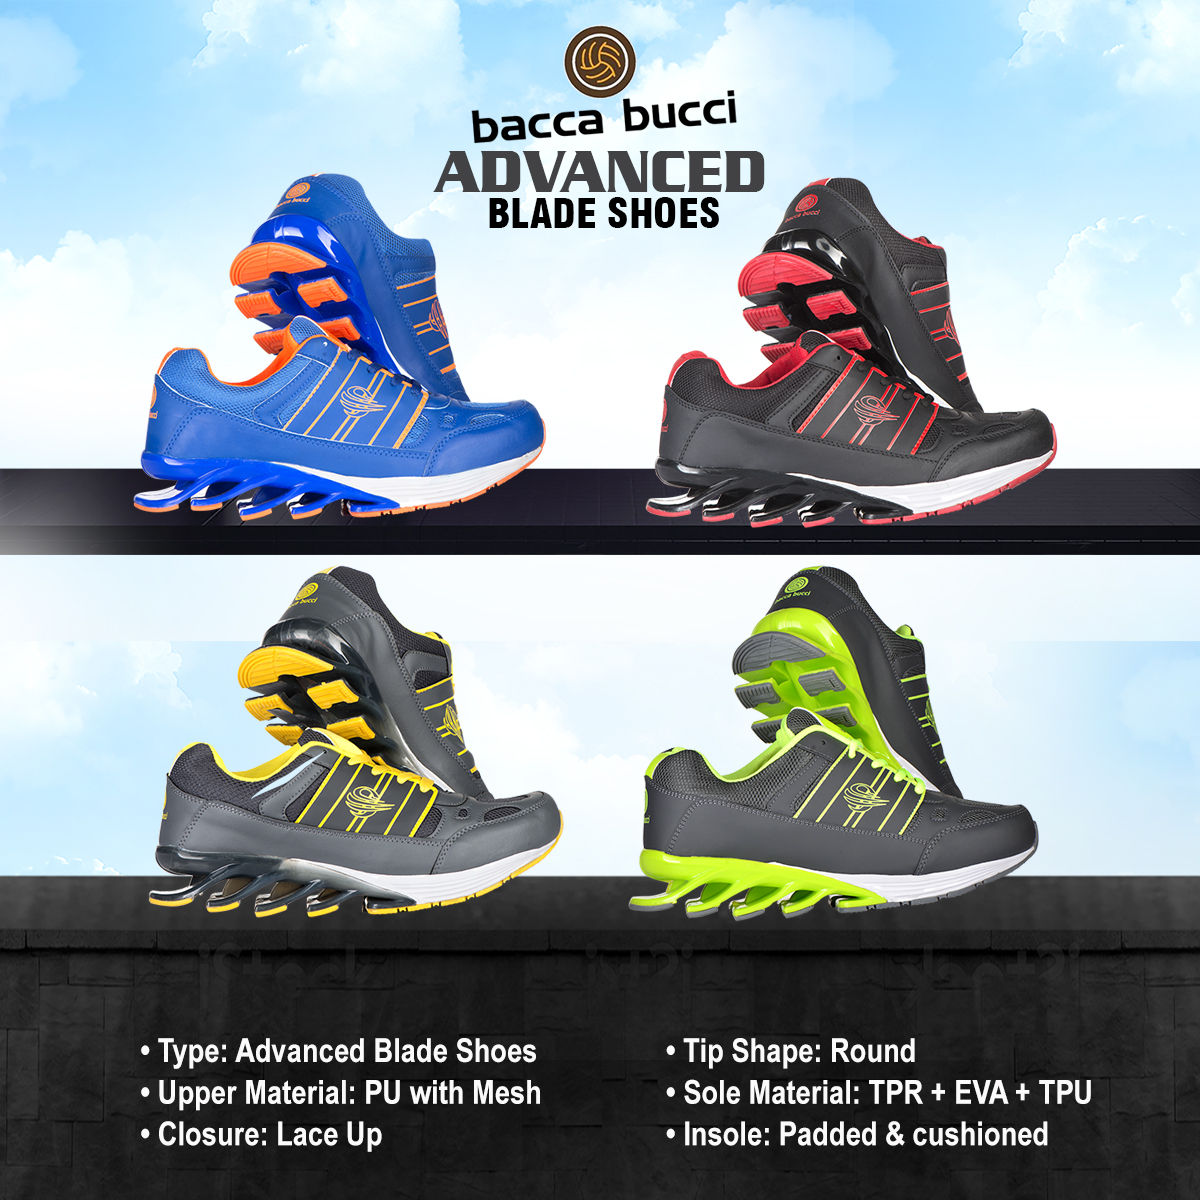 Buy Bacca Bucci Advanced Blade Shoes Online at Best Price in India on  Naaptol.com f8f1b73db7ab